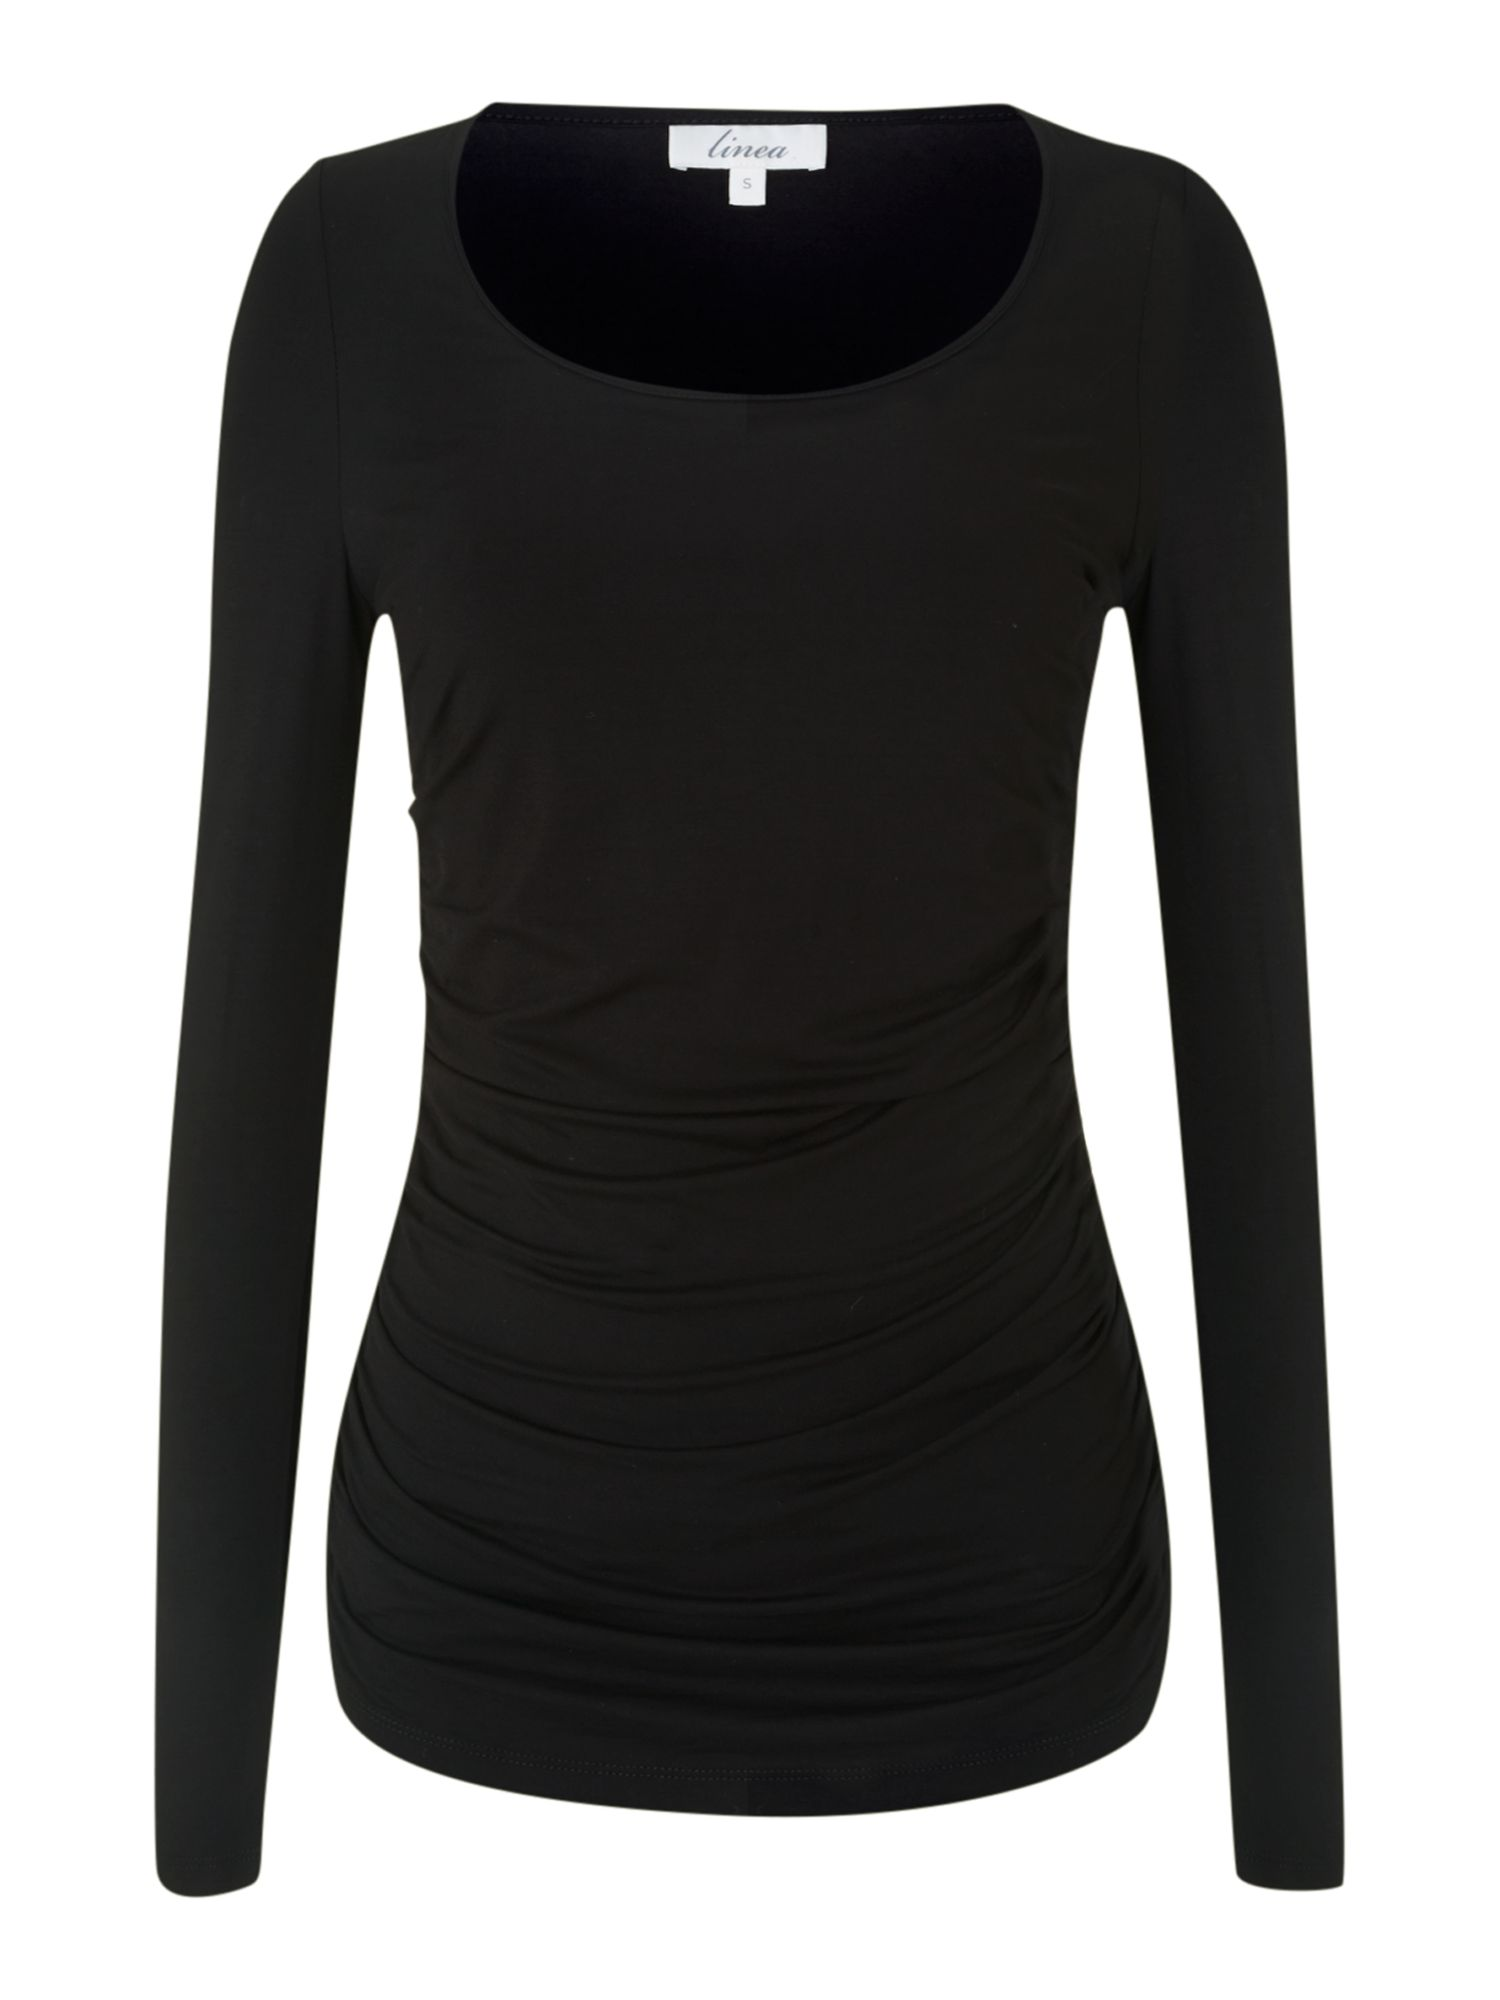 Essential l/s side ruch jersey top